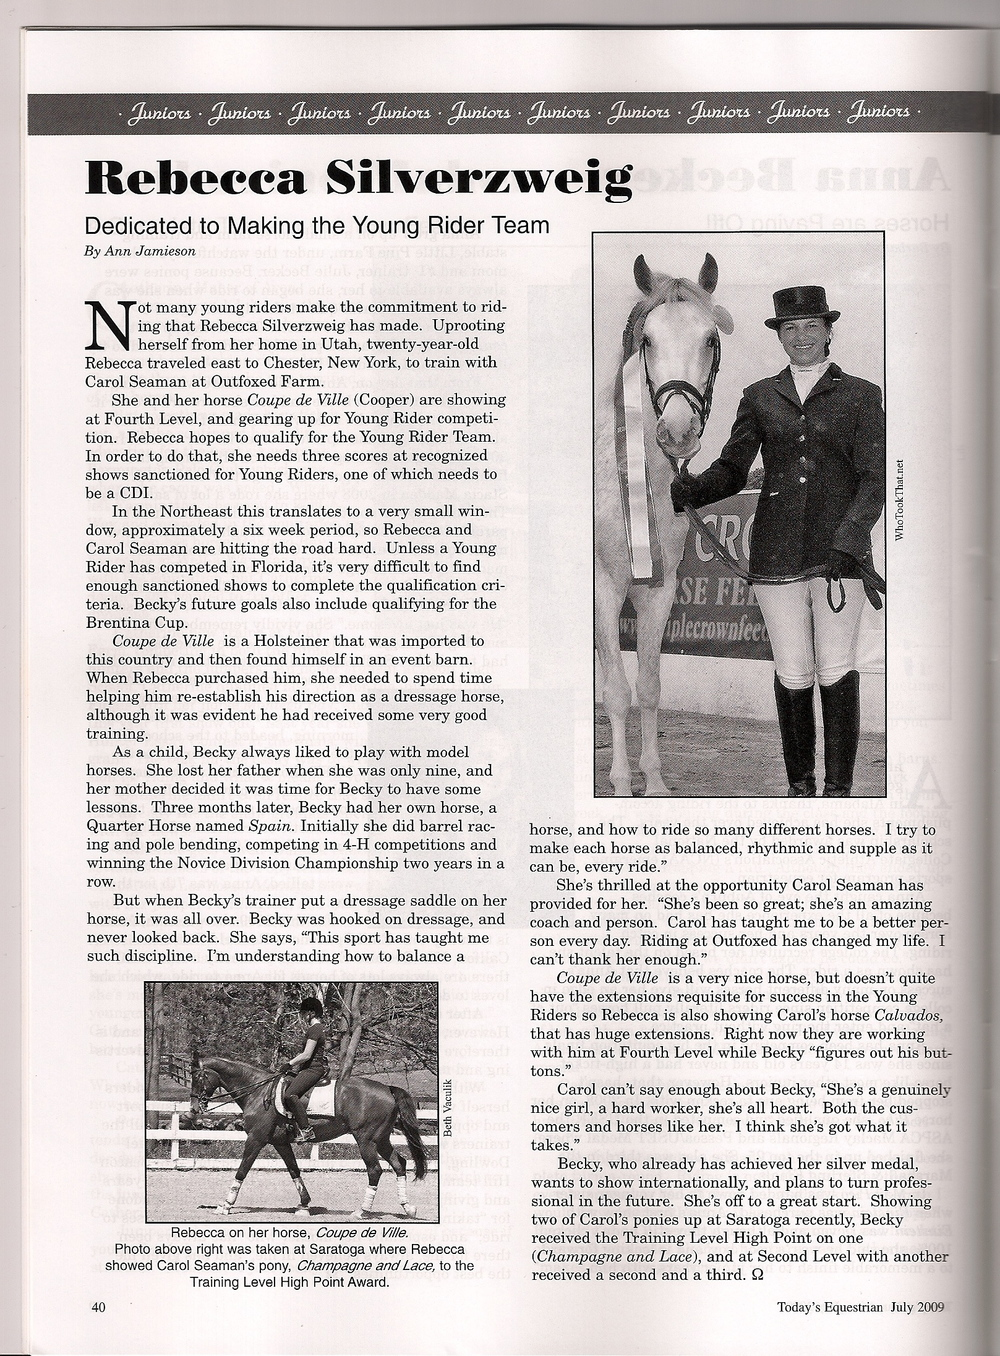 Featured in Today's Equestrian July 2009